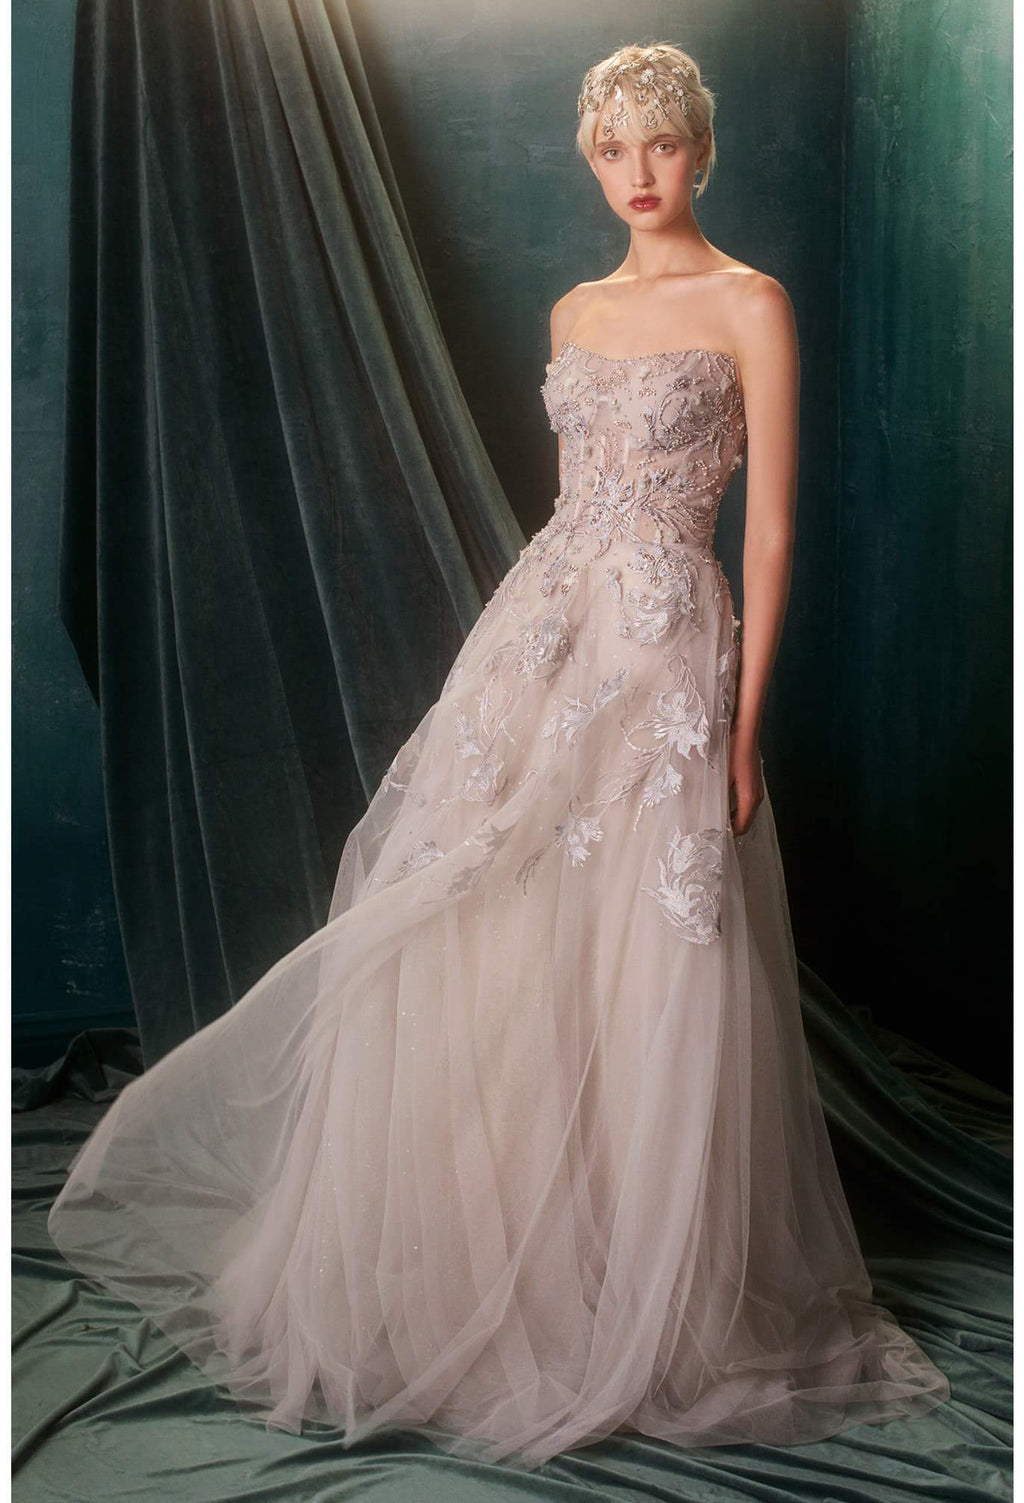 STRAPLESS ETHEREAL GARDEN TULLE BALLGOWN